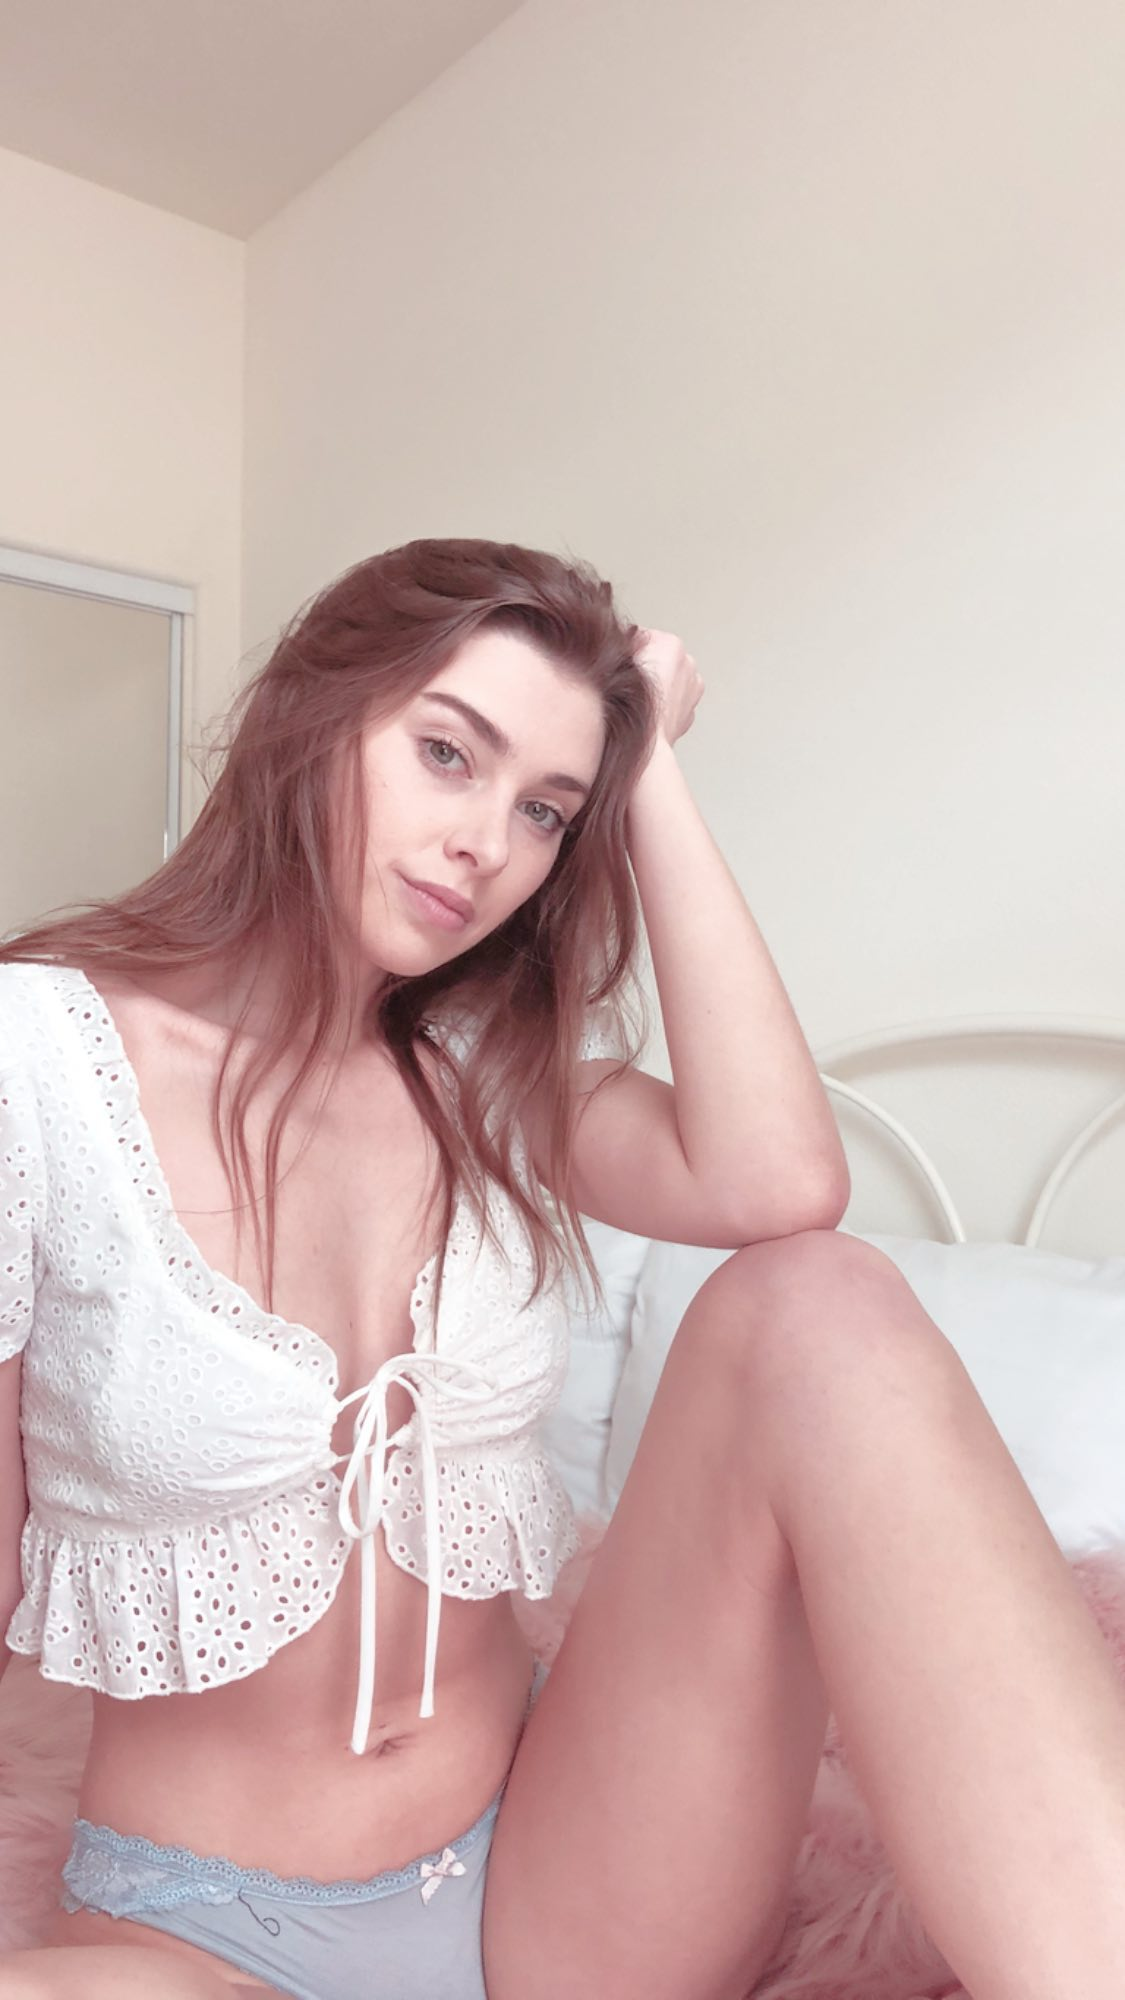 Mollyx Onlyfans 0044